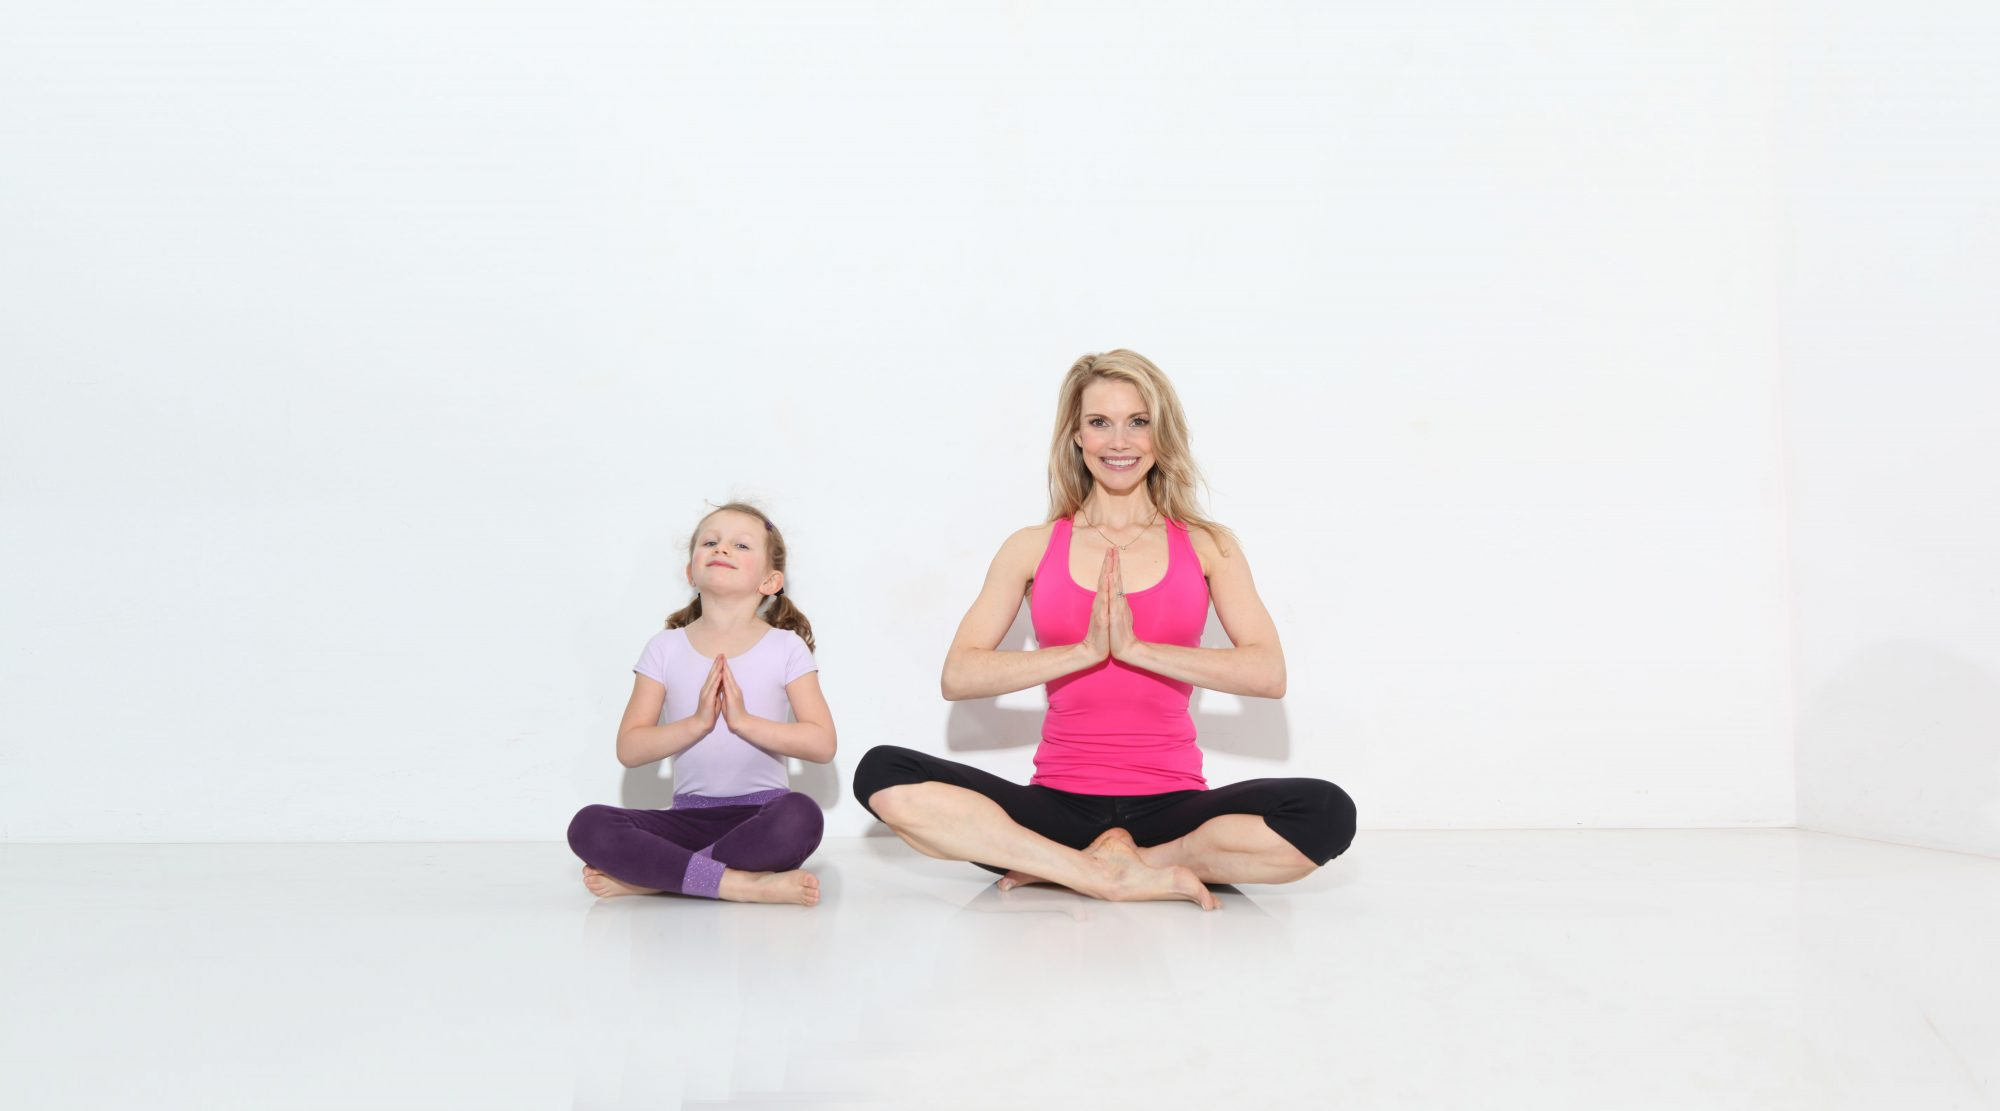 9 Yoga Poses You Can Do With Your Kids